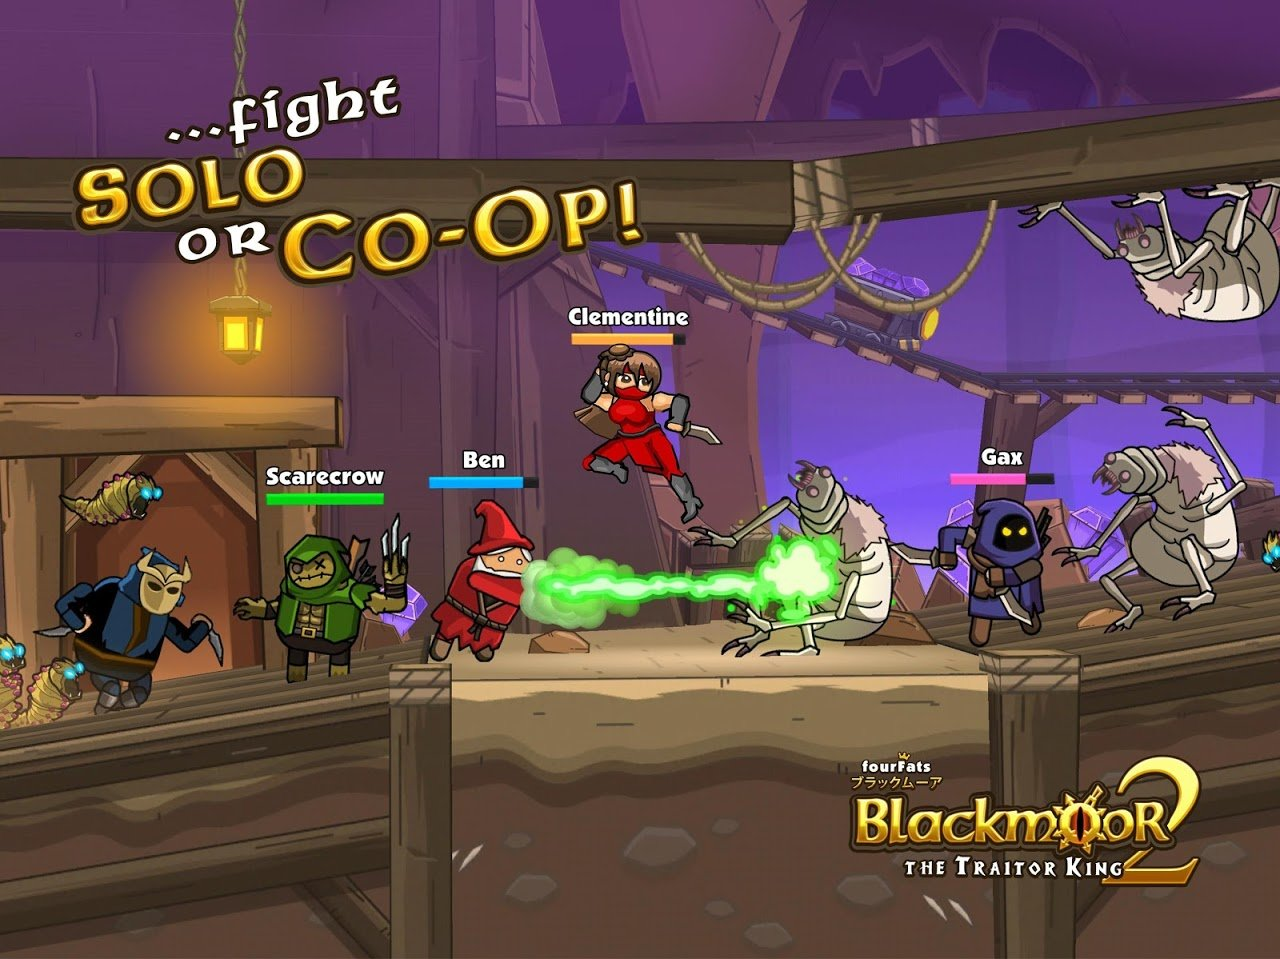 Blackmoor 2 Gameplay